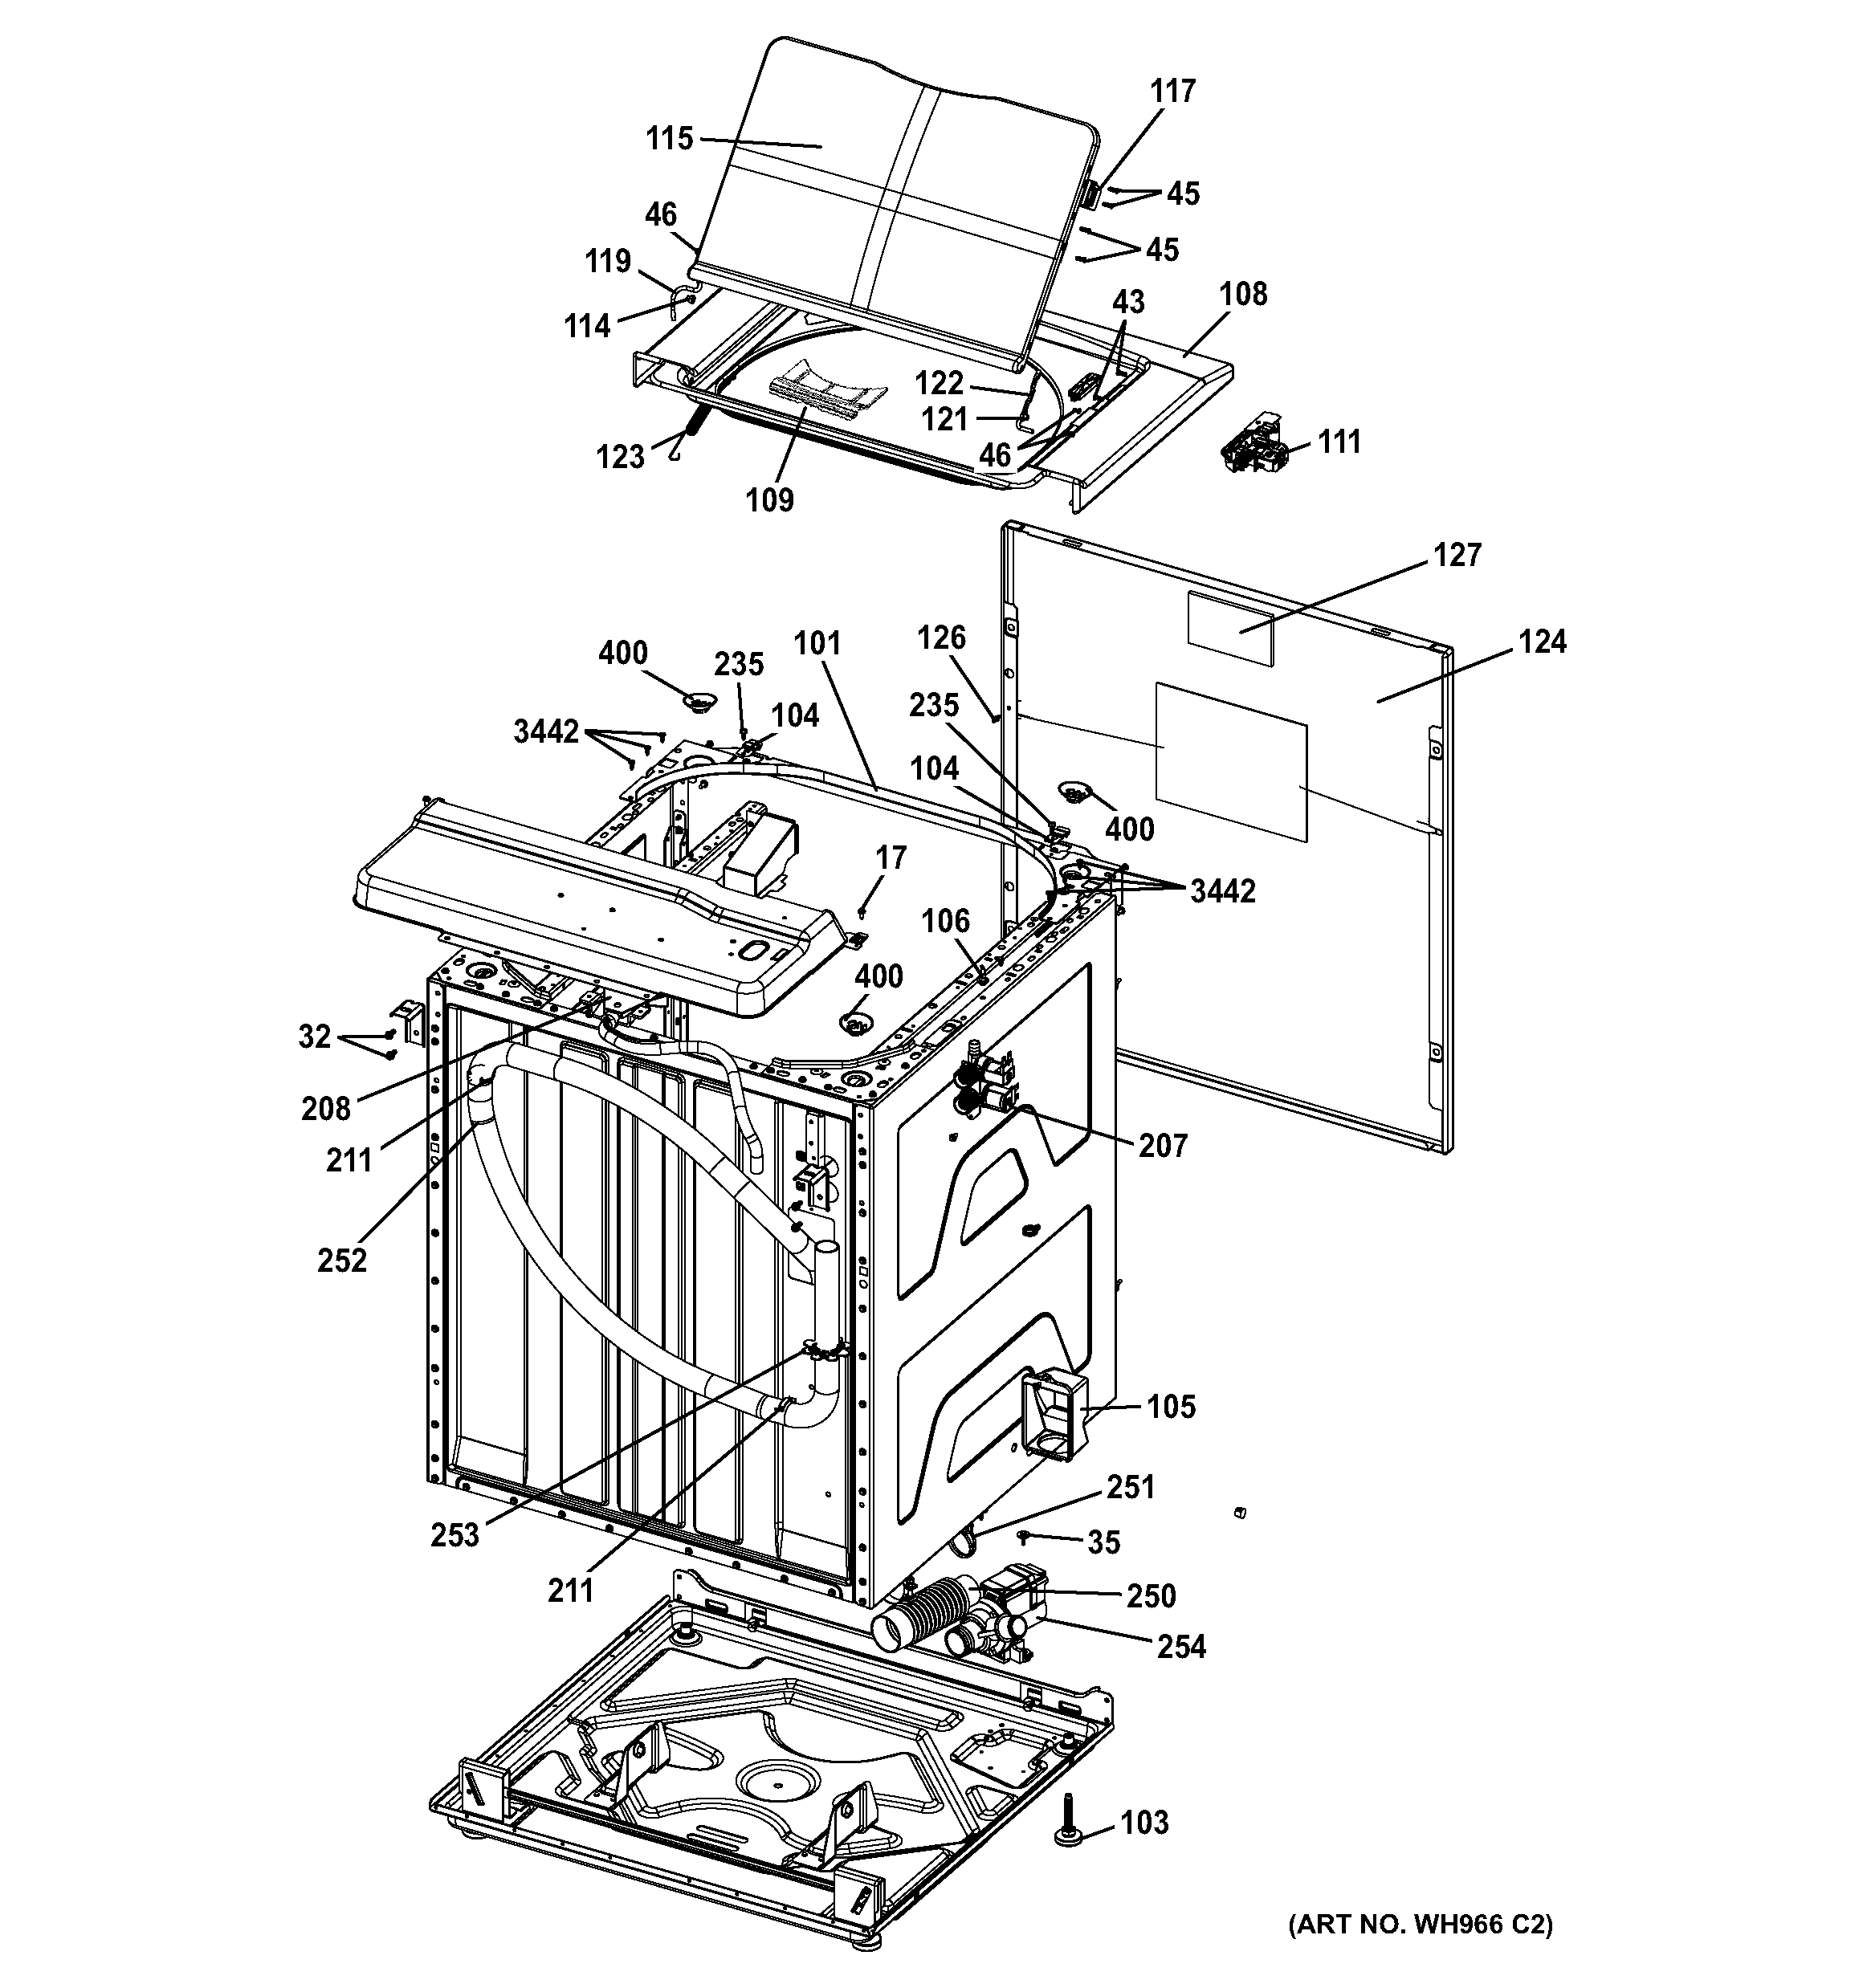 CABINET (6) Diagram & Parts List for Model 2661532110